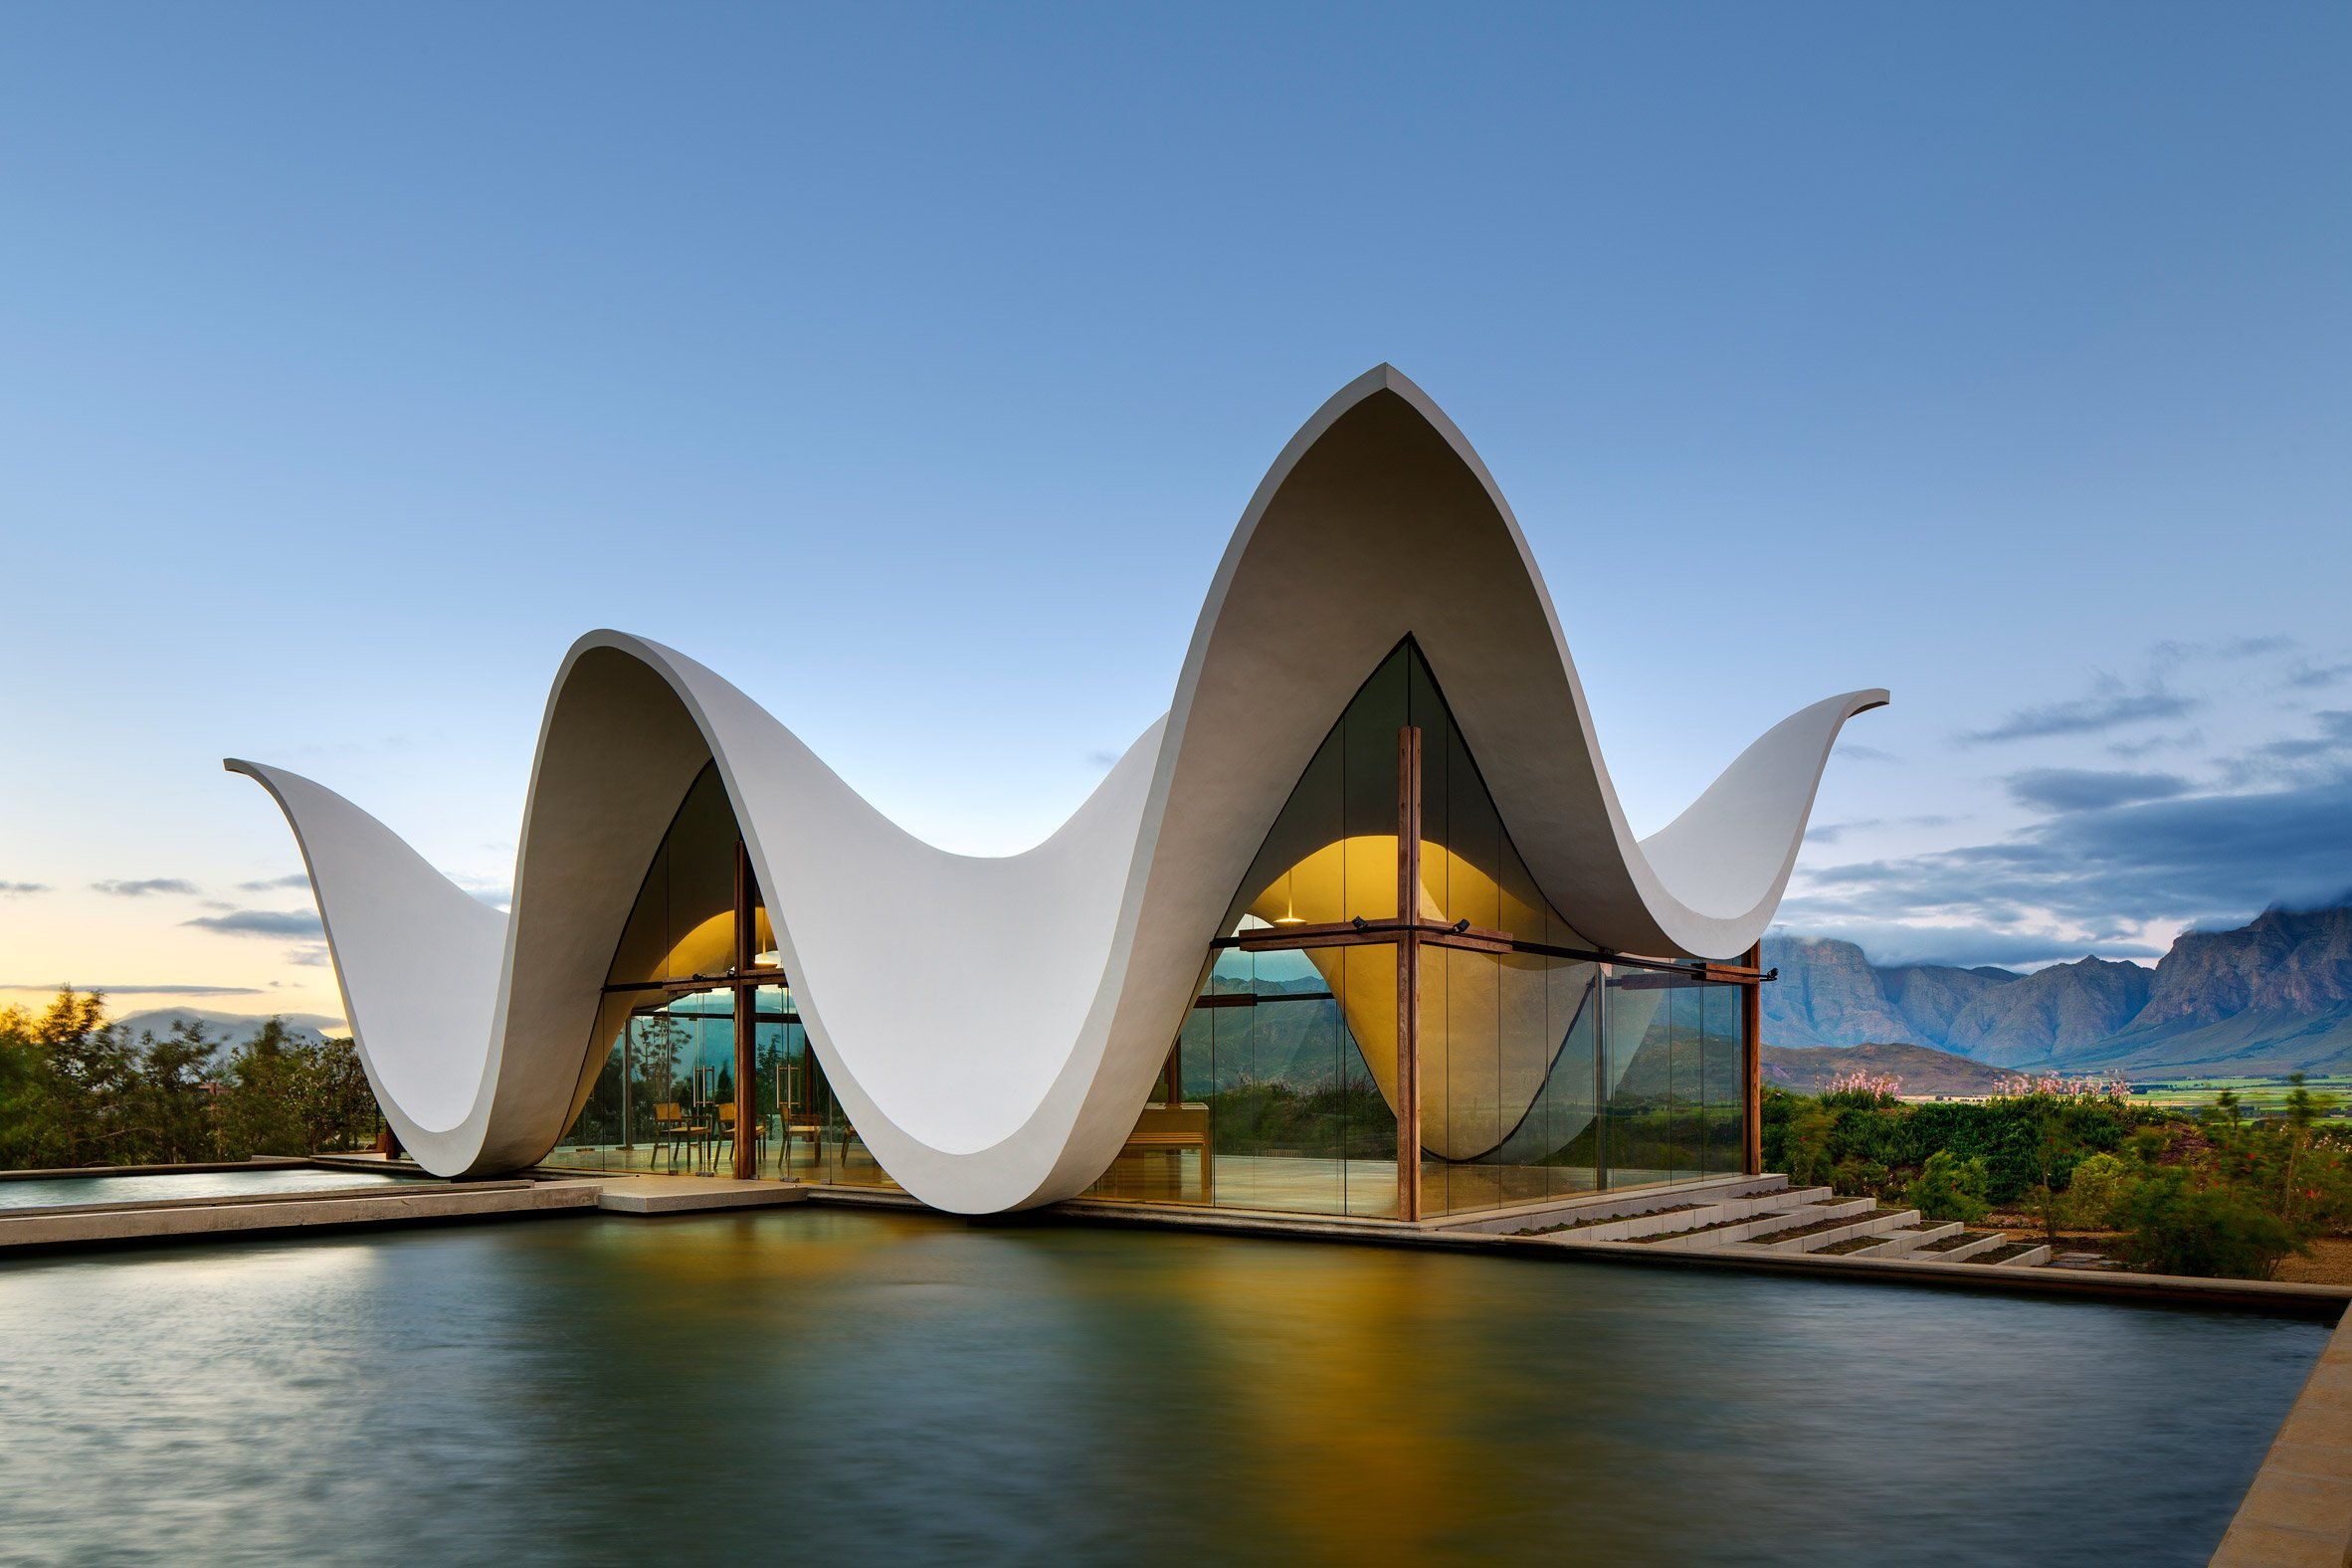 Steyn Studio's chapel frames dramatic views of South African countryside below its sinuous roof